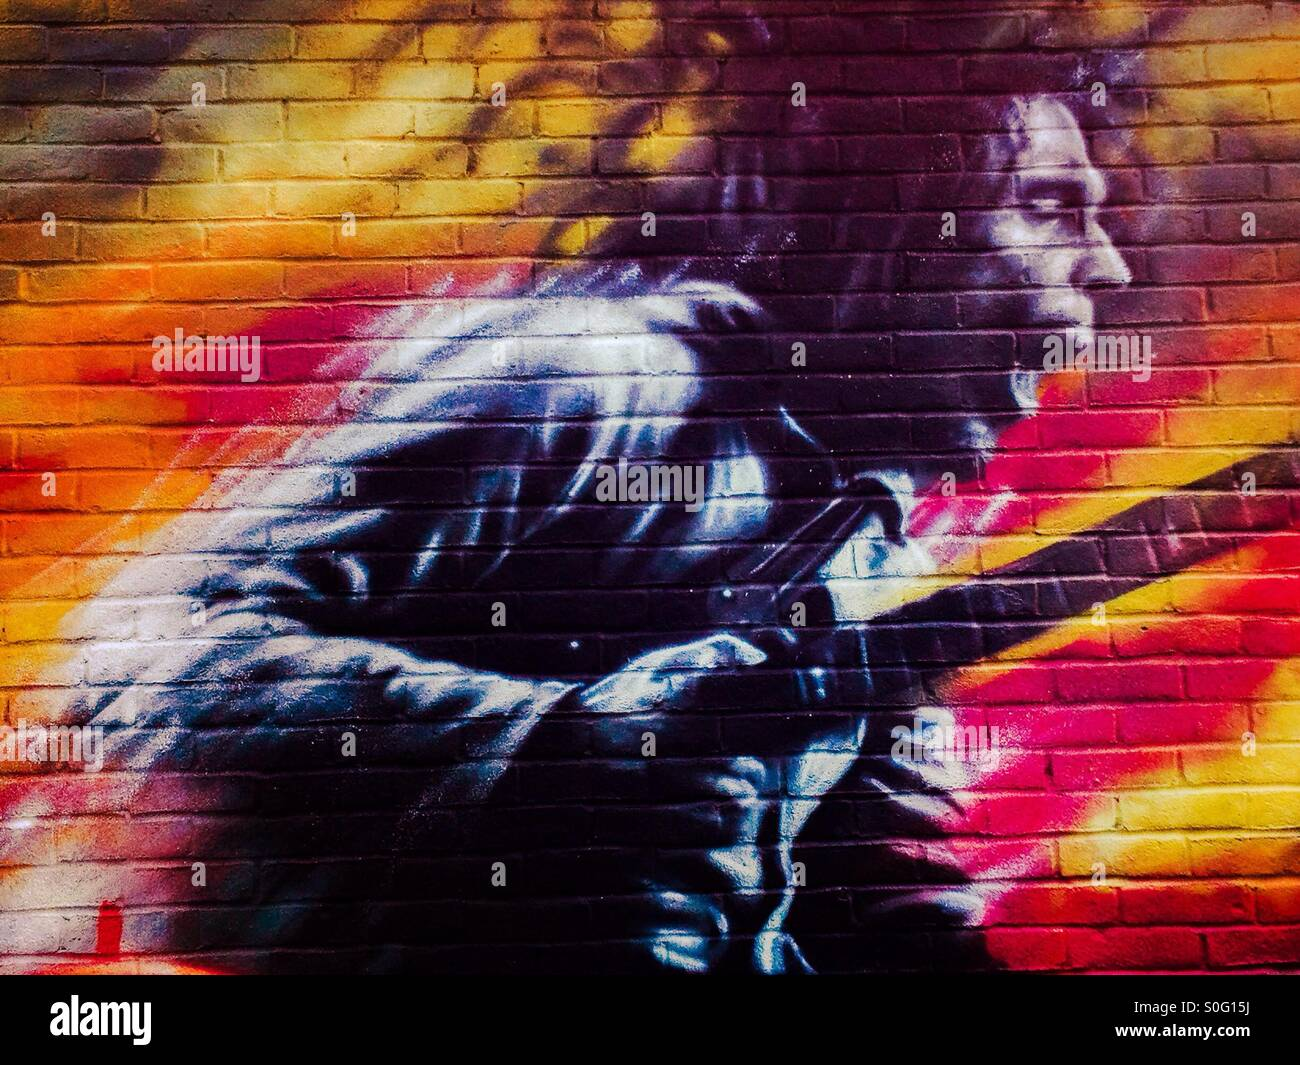 Bob marley street art stock photo royalty free image for Bob marley mural san francisco